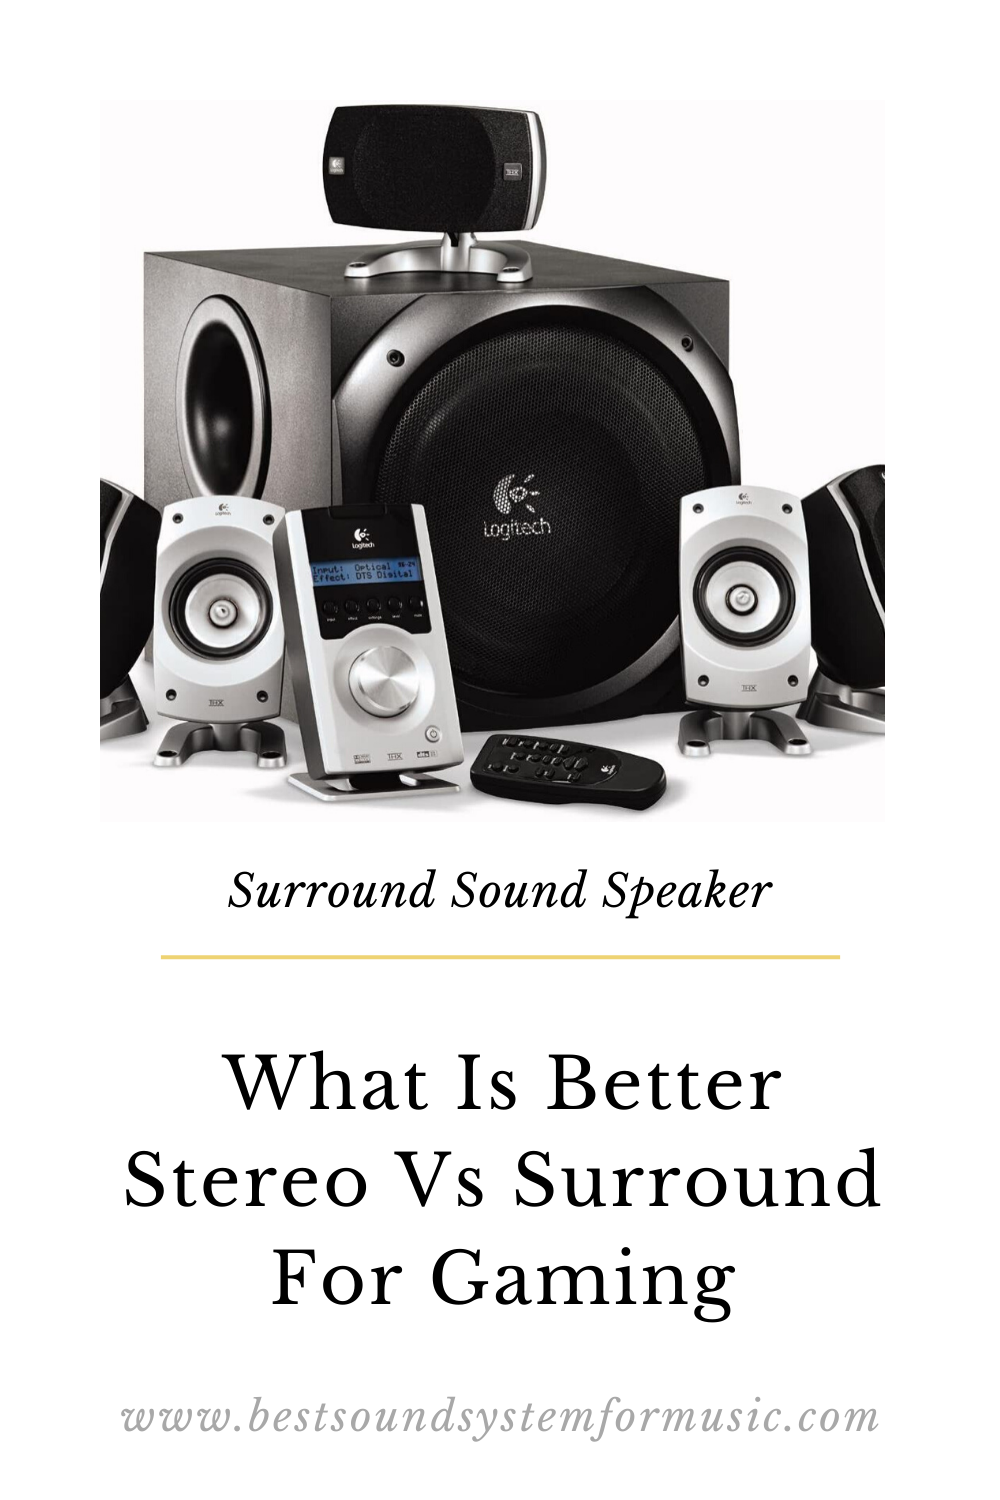 Surround Sound Speaker